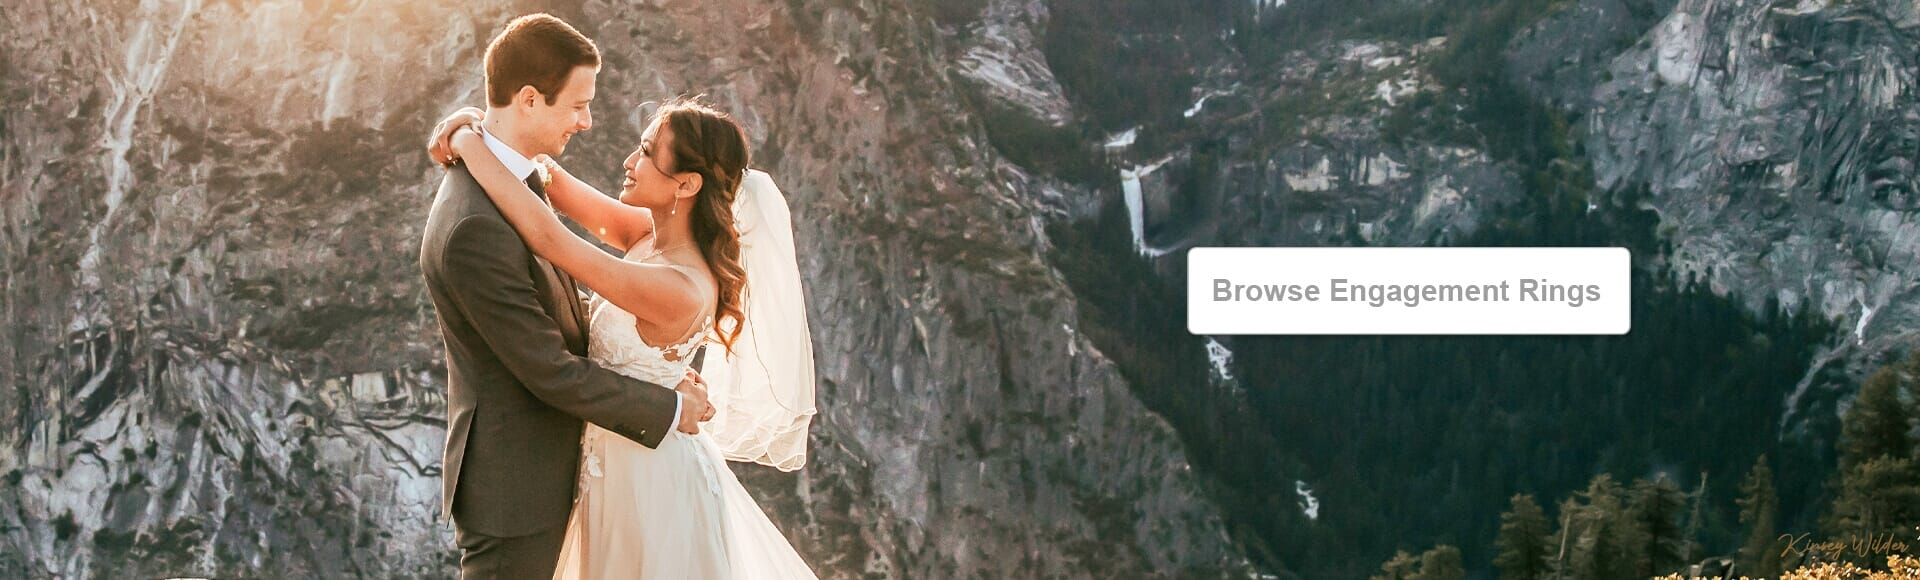 Newly wed couple surrounded by mountains